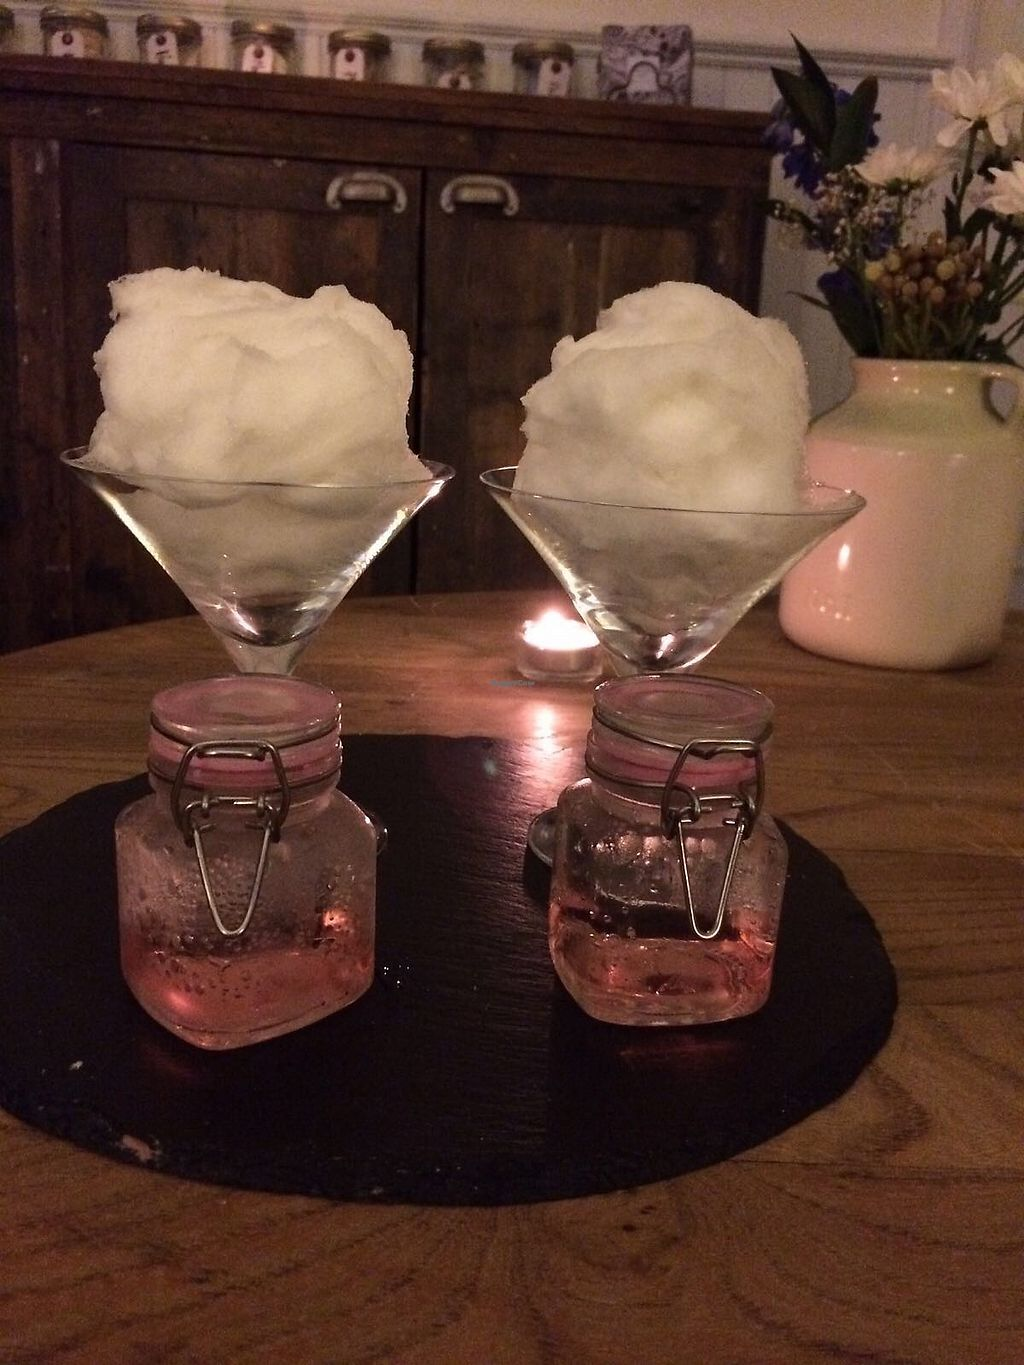 "Photo of Lush  by <a href=""/members/profile/avocado_jess"">avocado_jess</a> <br/>Vegan candy floss cocktails after 'The Comforter' spa treatment <br/> December 26, 2017  - <a href='/contact/abuse/image/56365/339179'>Report</a>"